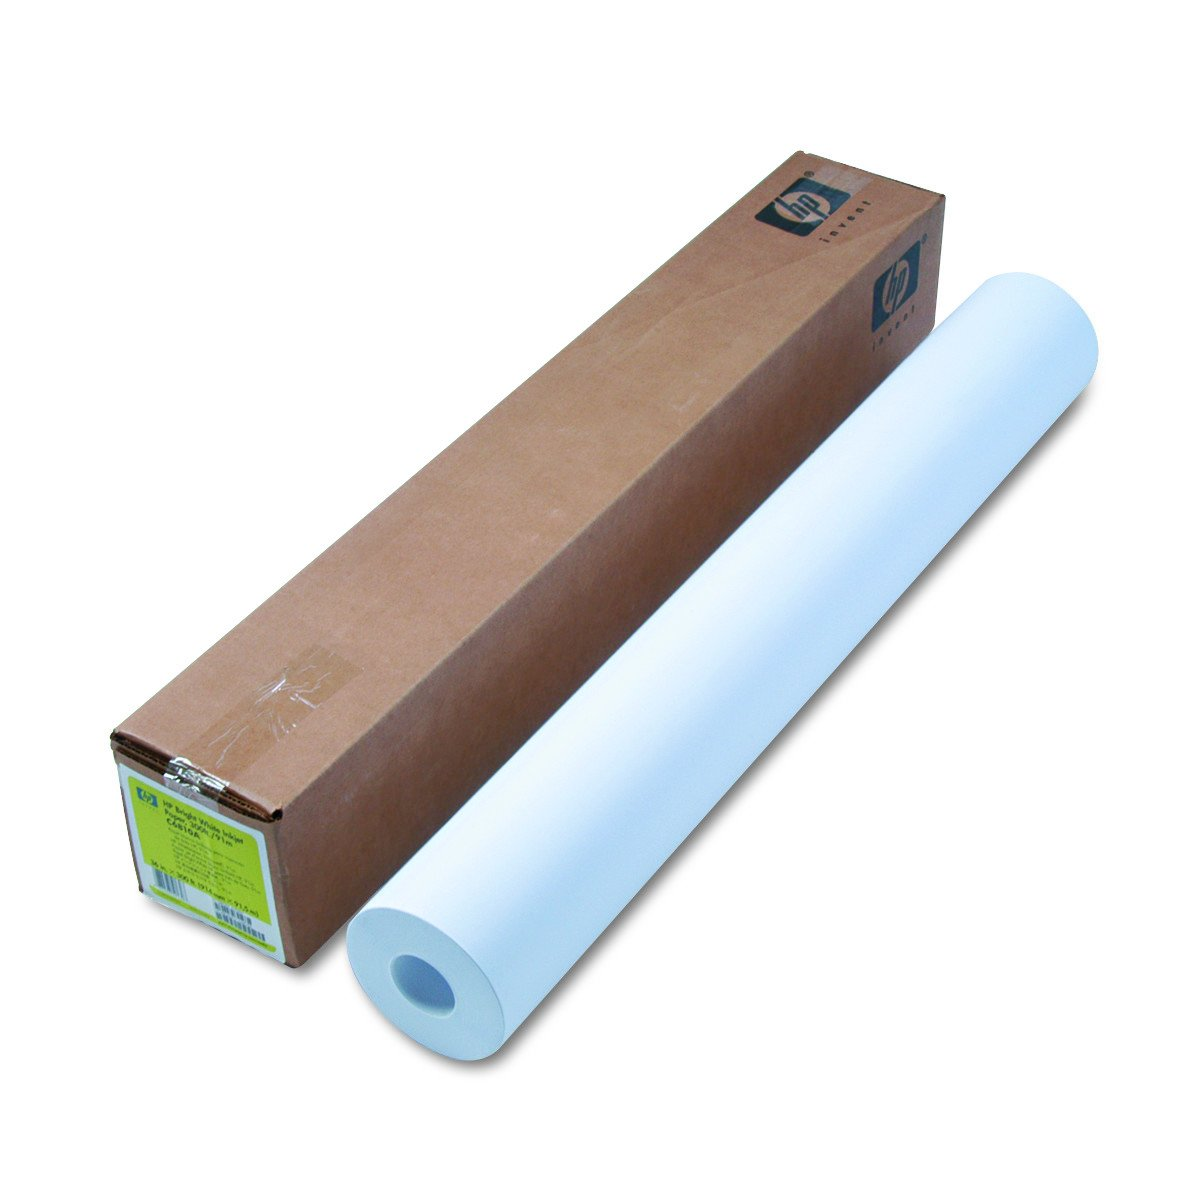 HP 36in X 300ft Bright White Inkjet Paper F/Designjet 1000 Core Hp - Hp Paper C5718A B00AIIJ3SO Office Supplies